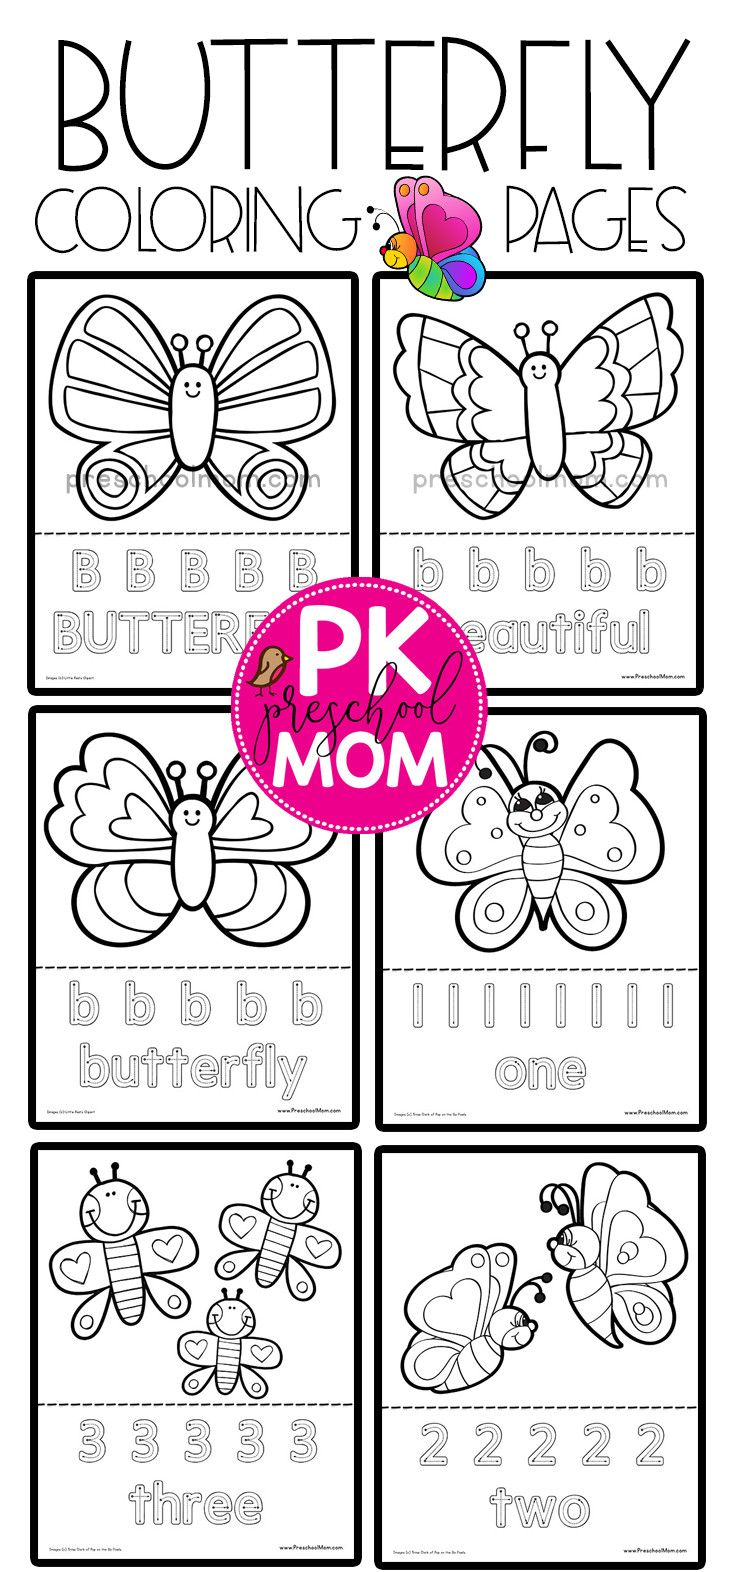 Free Butterfly Coloring Pages is part of Butterfly coloring page - From caterpillar to butterfly, these free butterfly coloring sheets are fantastic for preschool students  Each printable butterfly includes thick black lines for easy coloring  Your tots and preschool students will love how simple these butterflies are to color in  Additionally, you'll find each coloring page includes an educational activity such as handwriting or tracing for extra practice